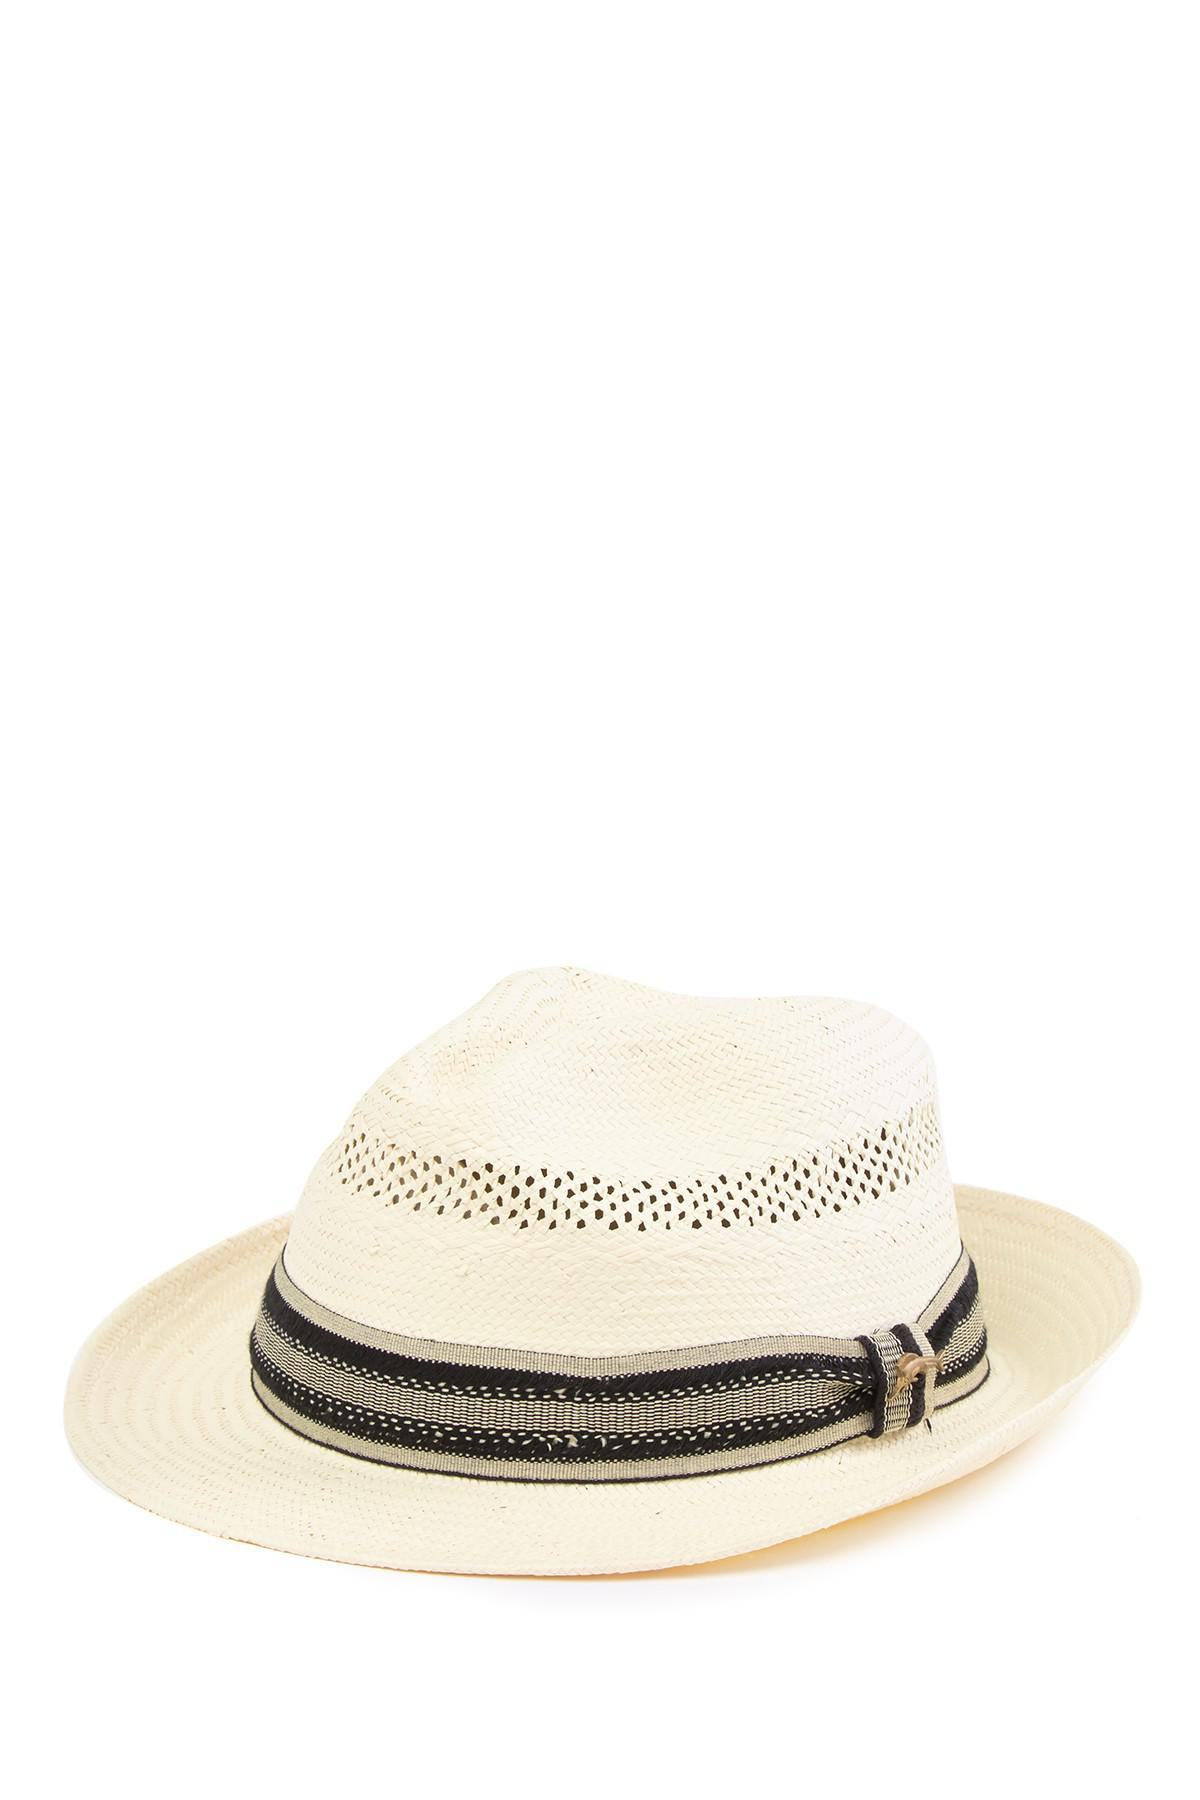 a321c6e80c3d5 Lyst - Tommy Bahama Toyo Fedora in Natural for Men